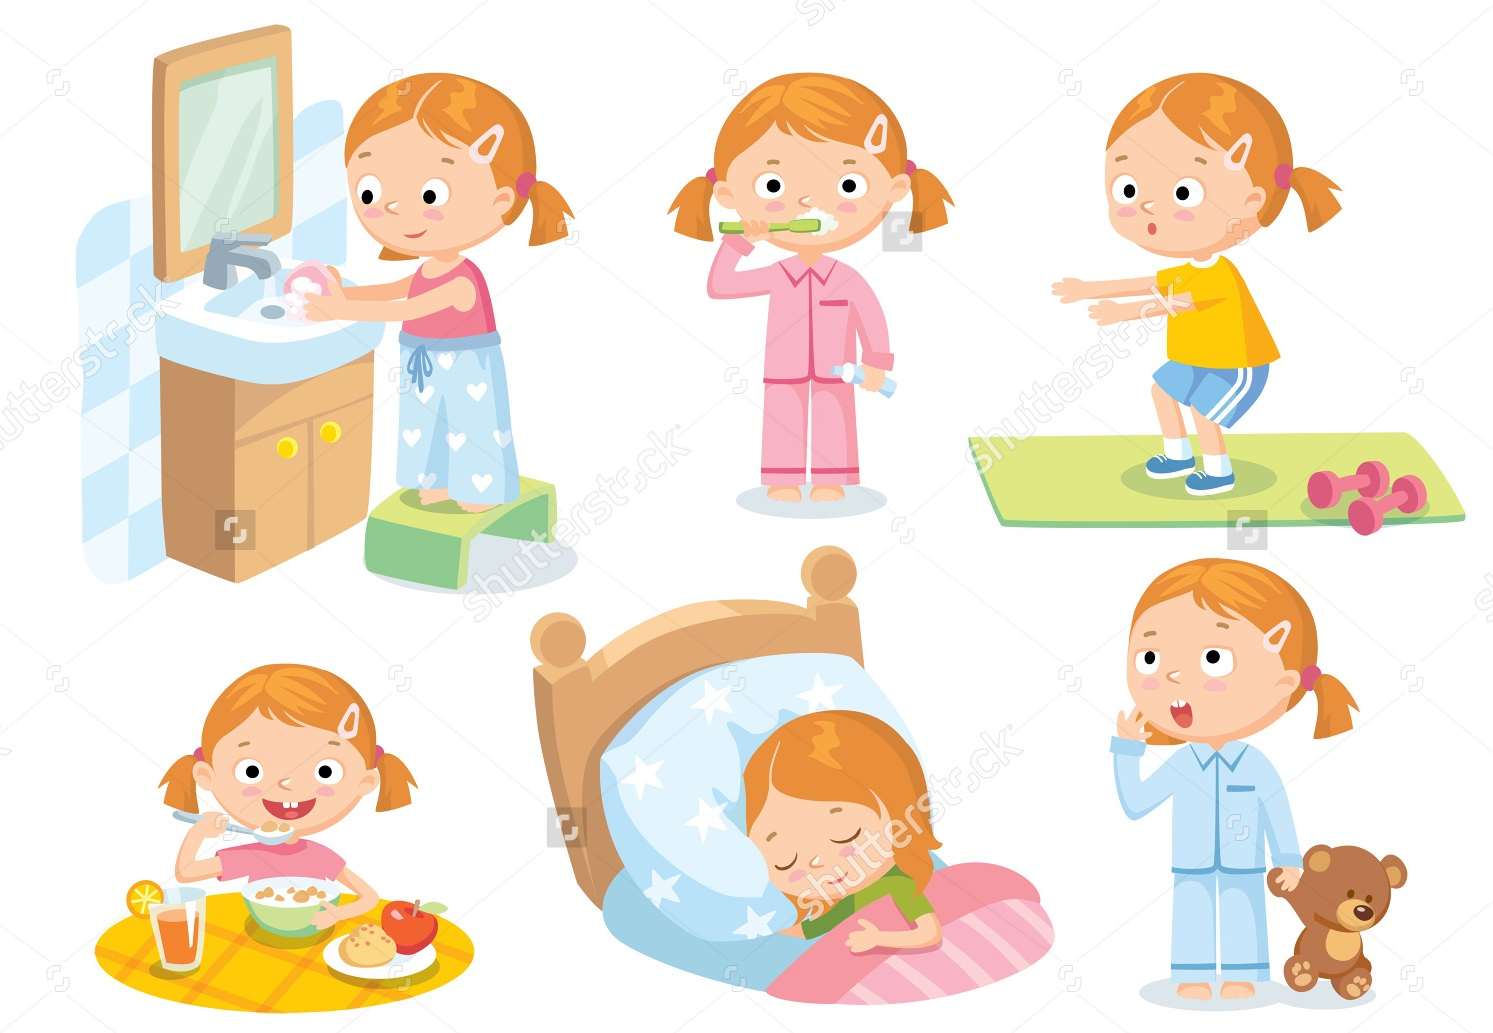 Helping your child doing daily routines independently